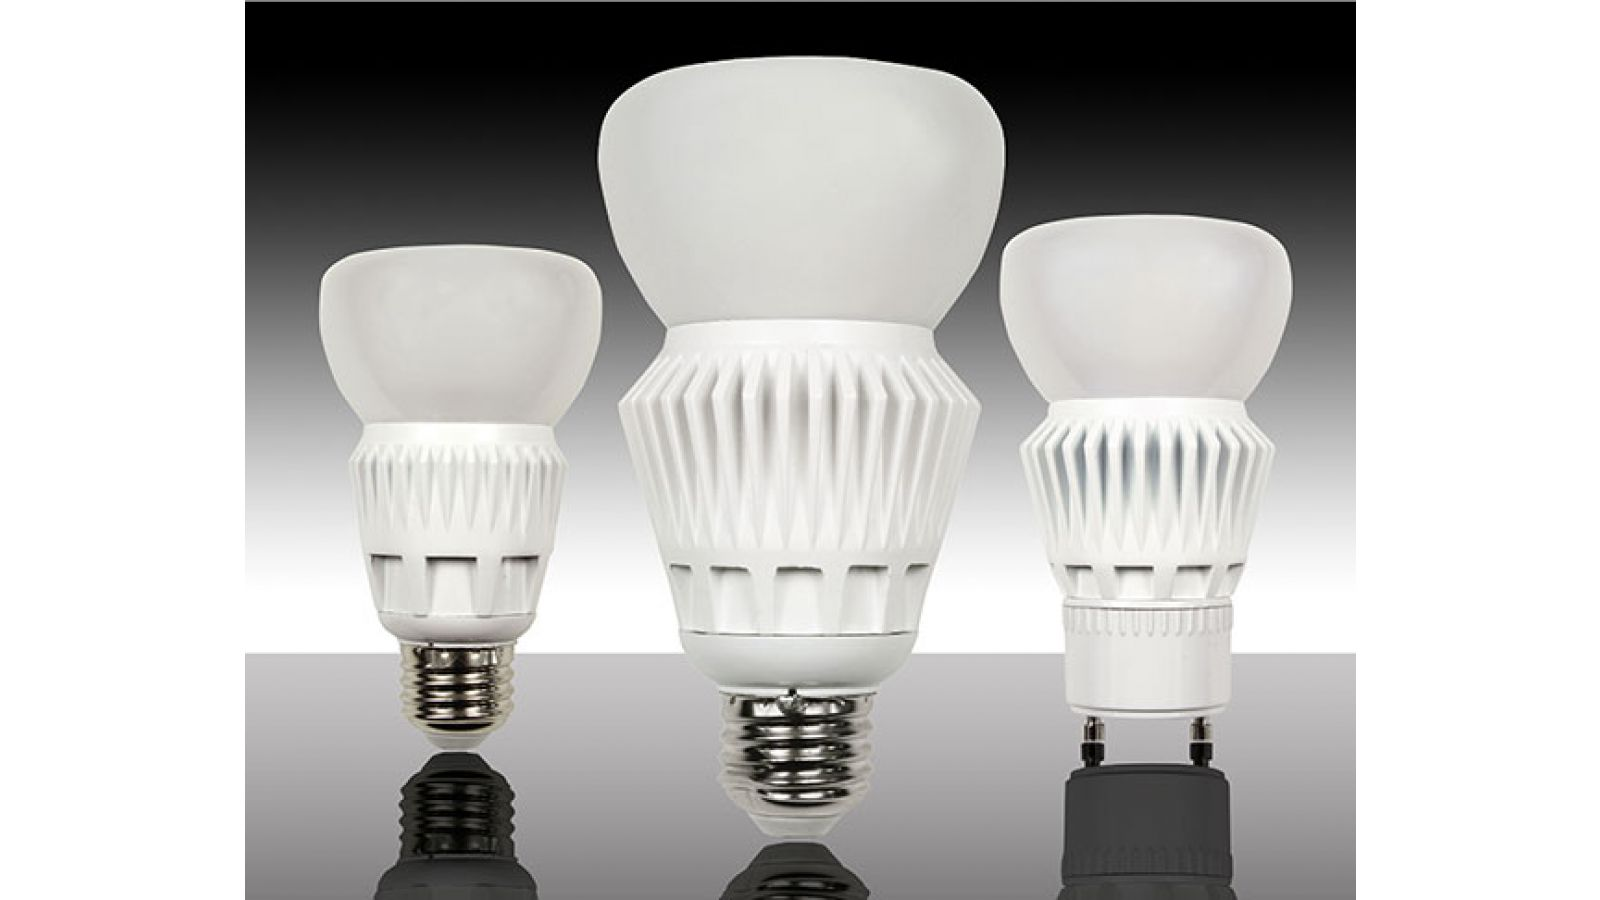 LED Omnidirectional A Lamps